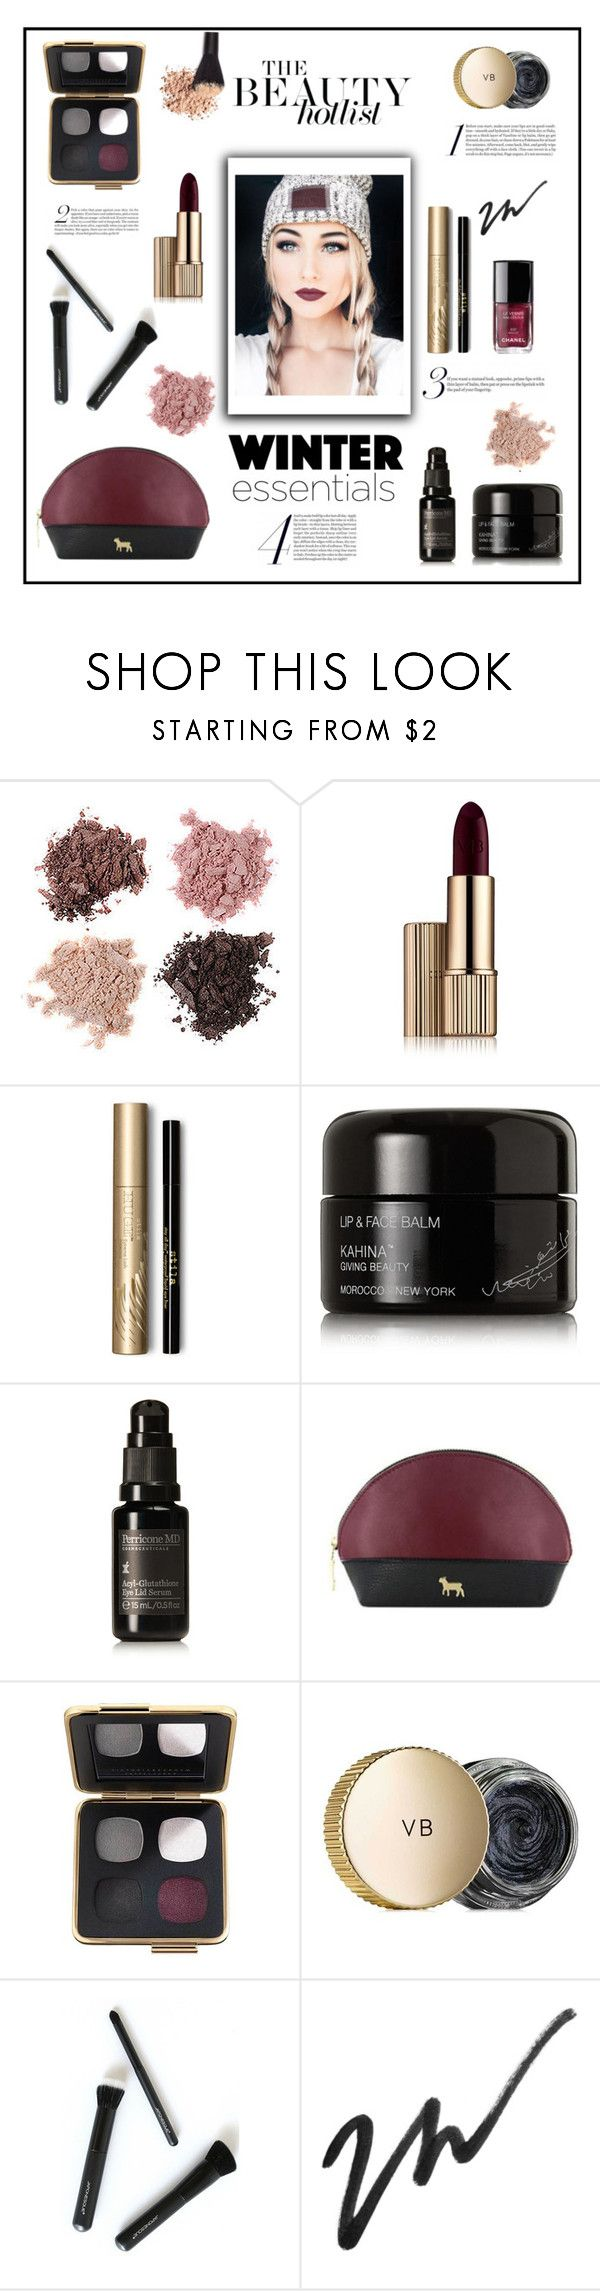 """""""Winter Beauty Essentials!"""" by diane1234 liked on Polyvore"""